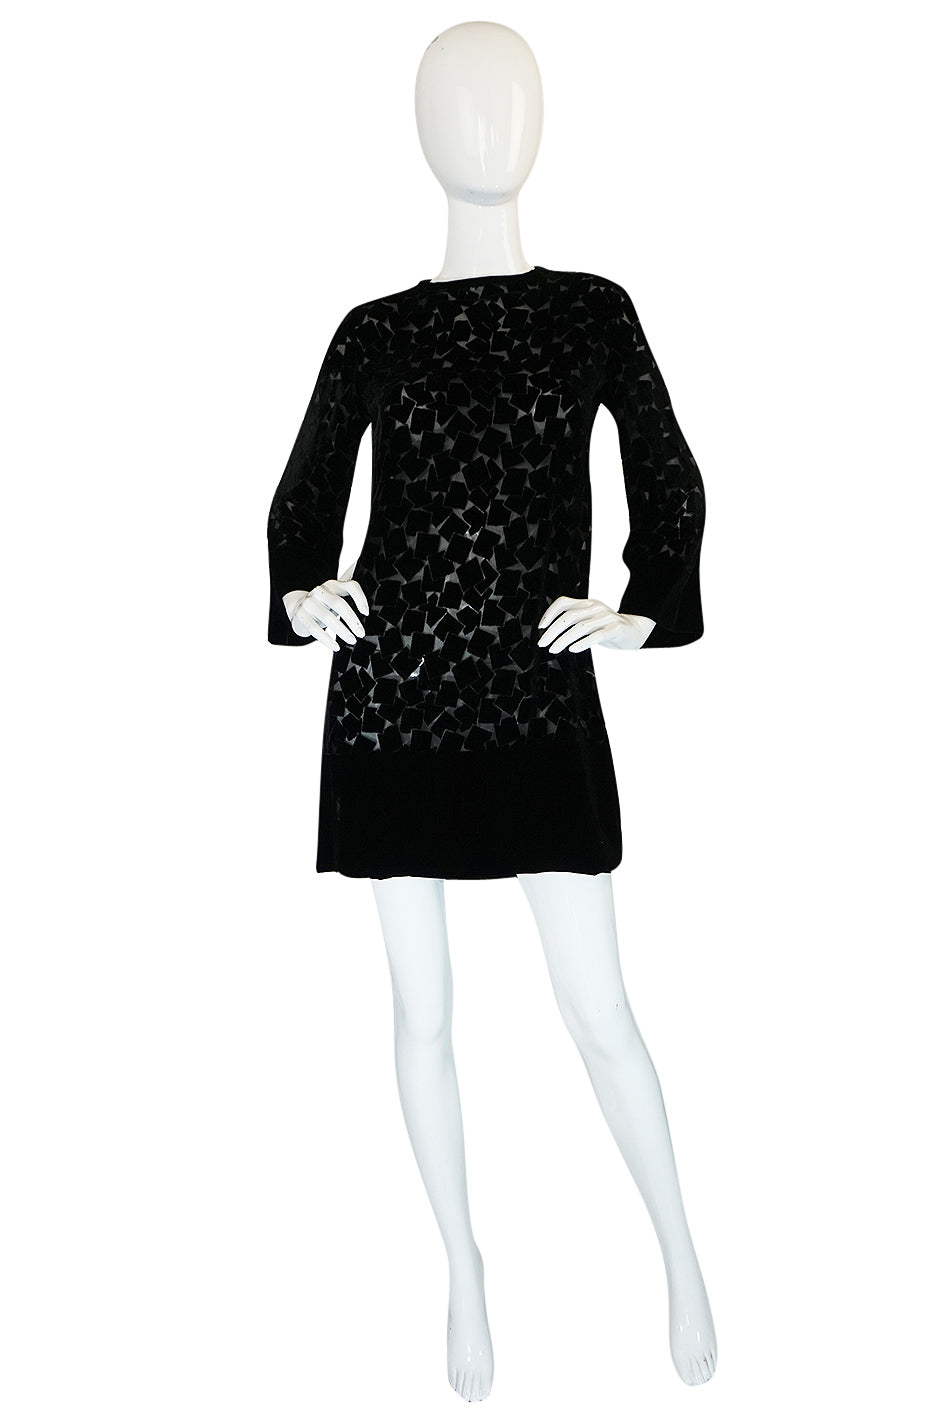 Yves Saint Laurent Silk Shift Dress Wiki For Sale Choice Cheap Price Q3RE2C